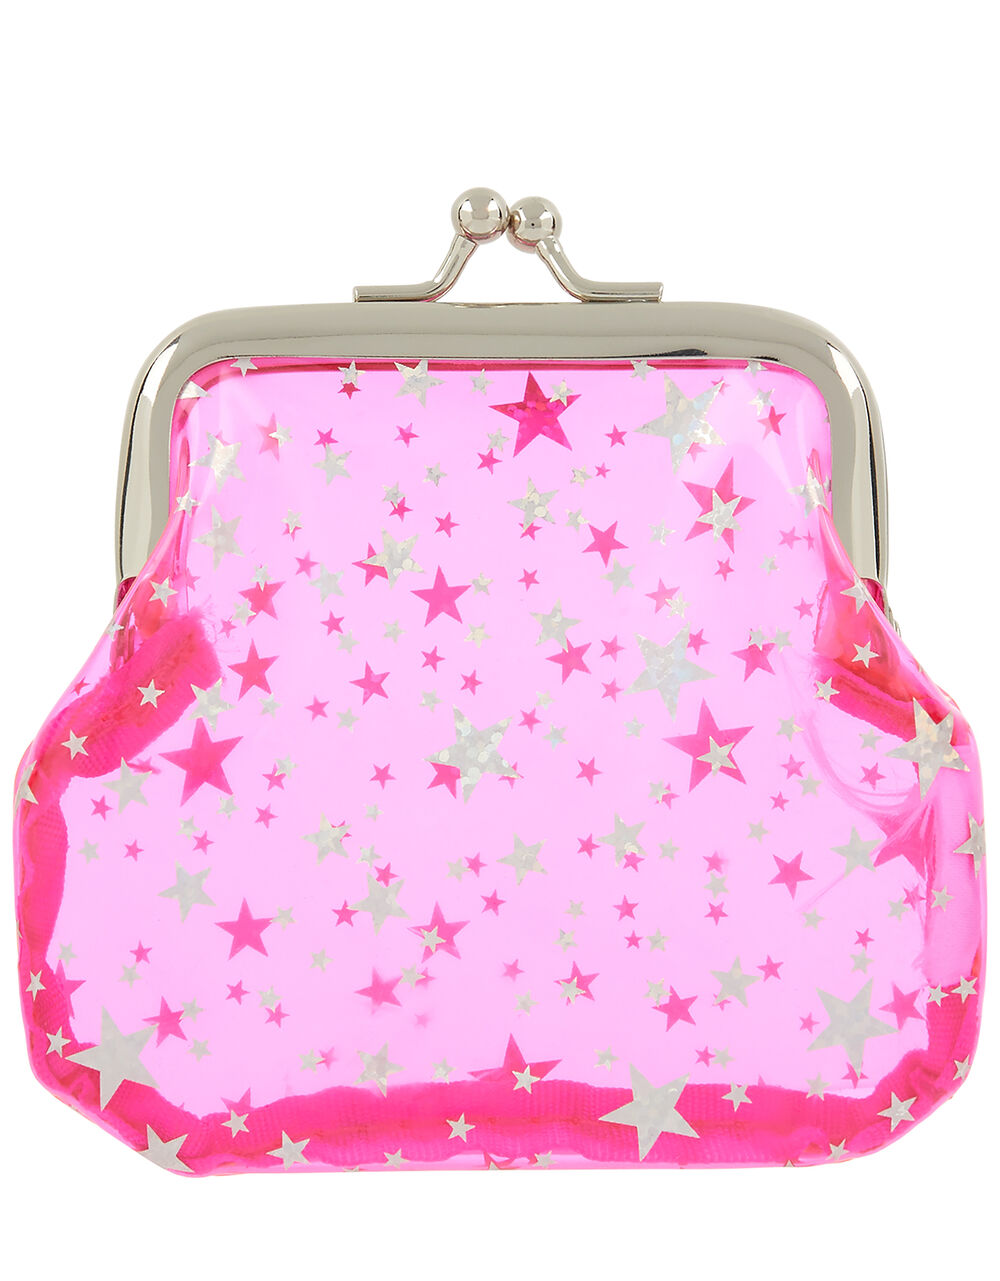 Jelly Star Coin Purse, , large